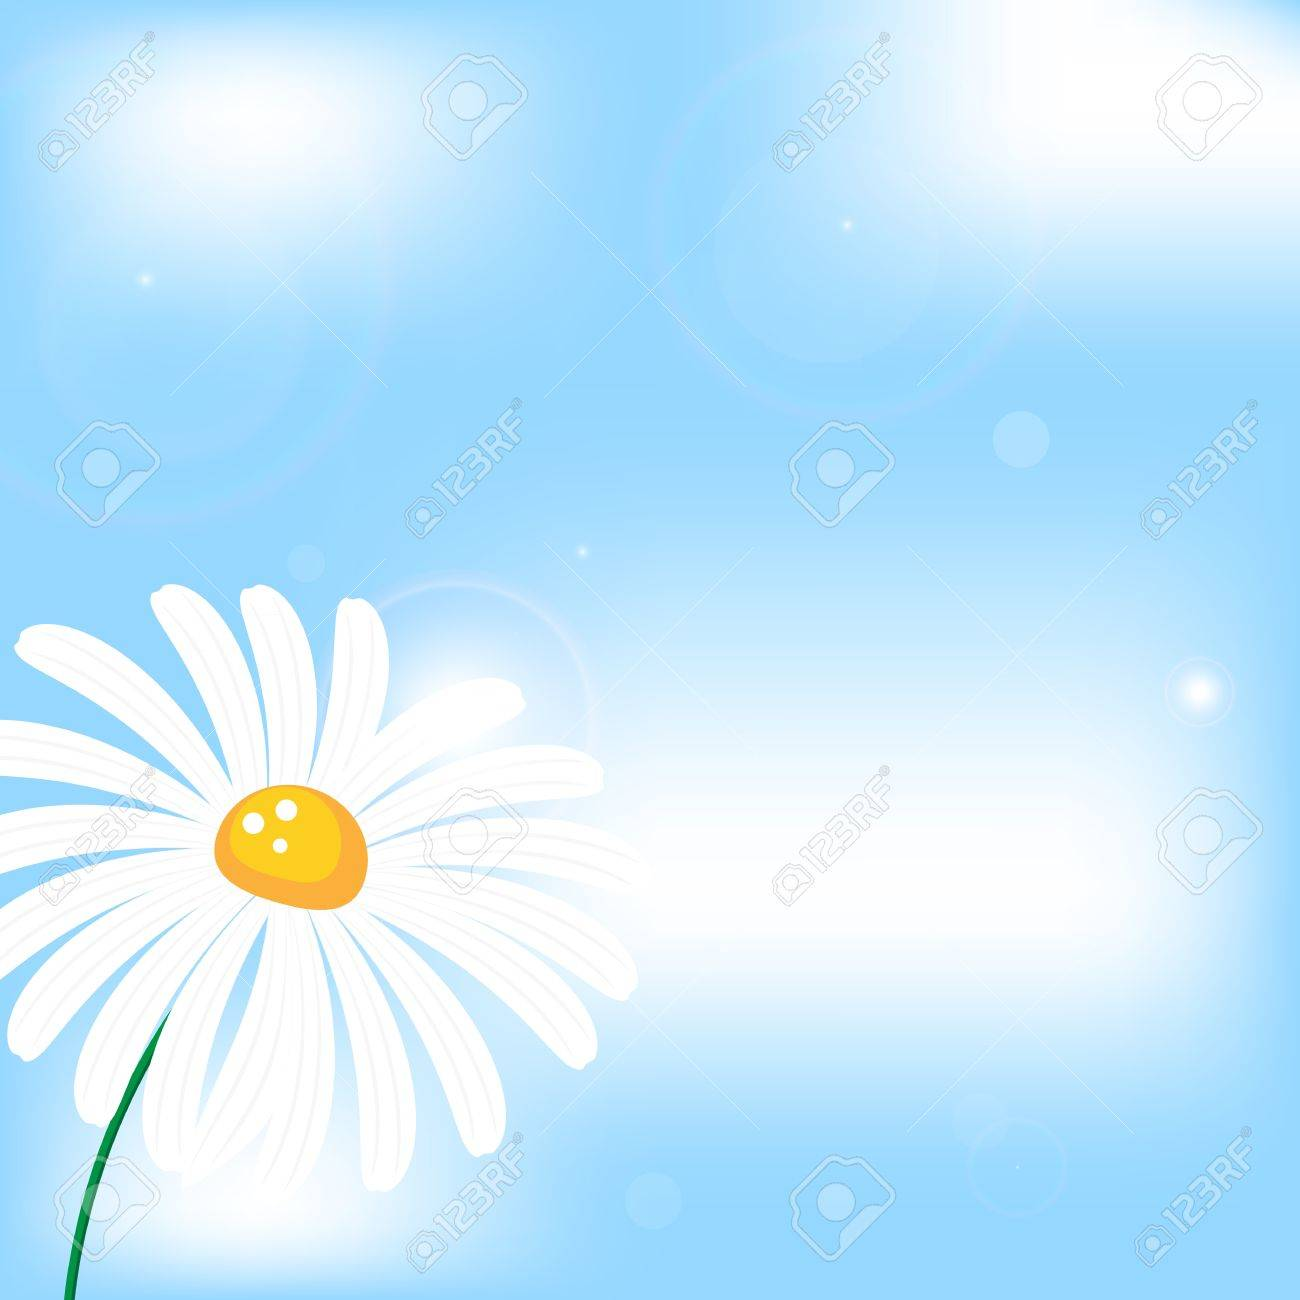 abstract vector background with camomile flower in sunshine, sky and clouds Stock Vector - 18301291